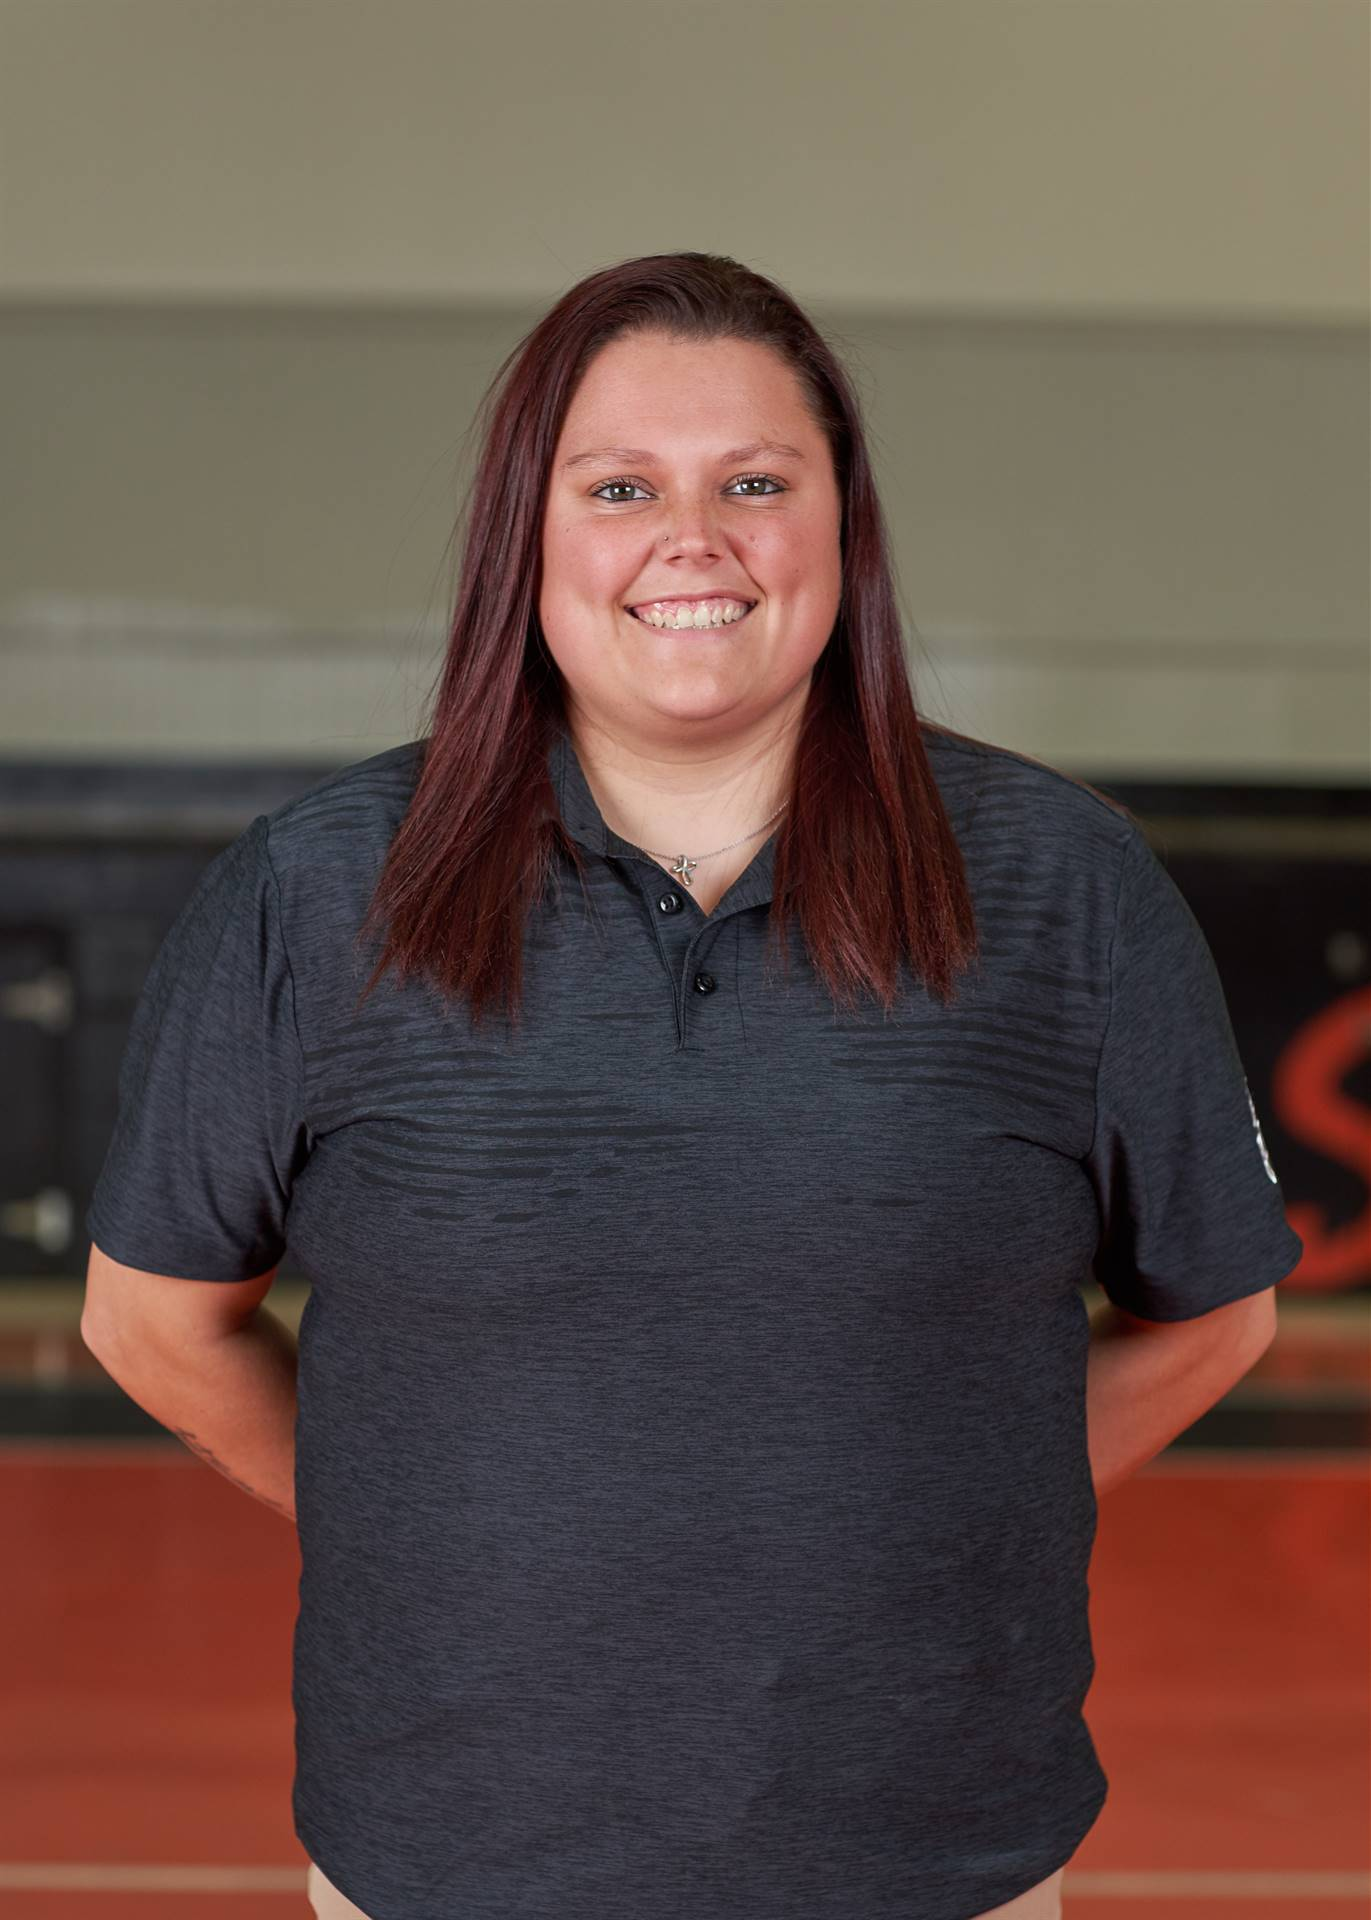 7th Girls Basketball Coach - Stefaniee Powers